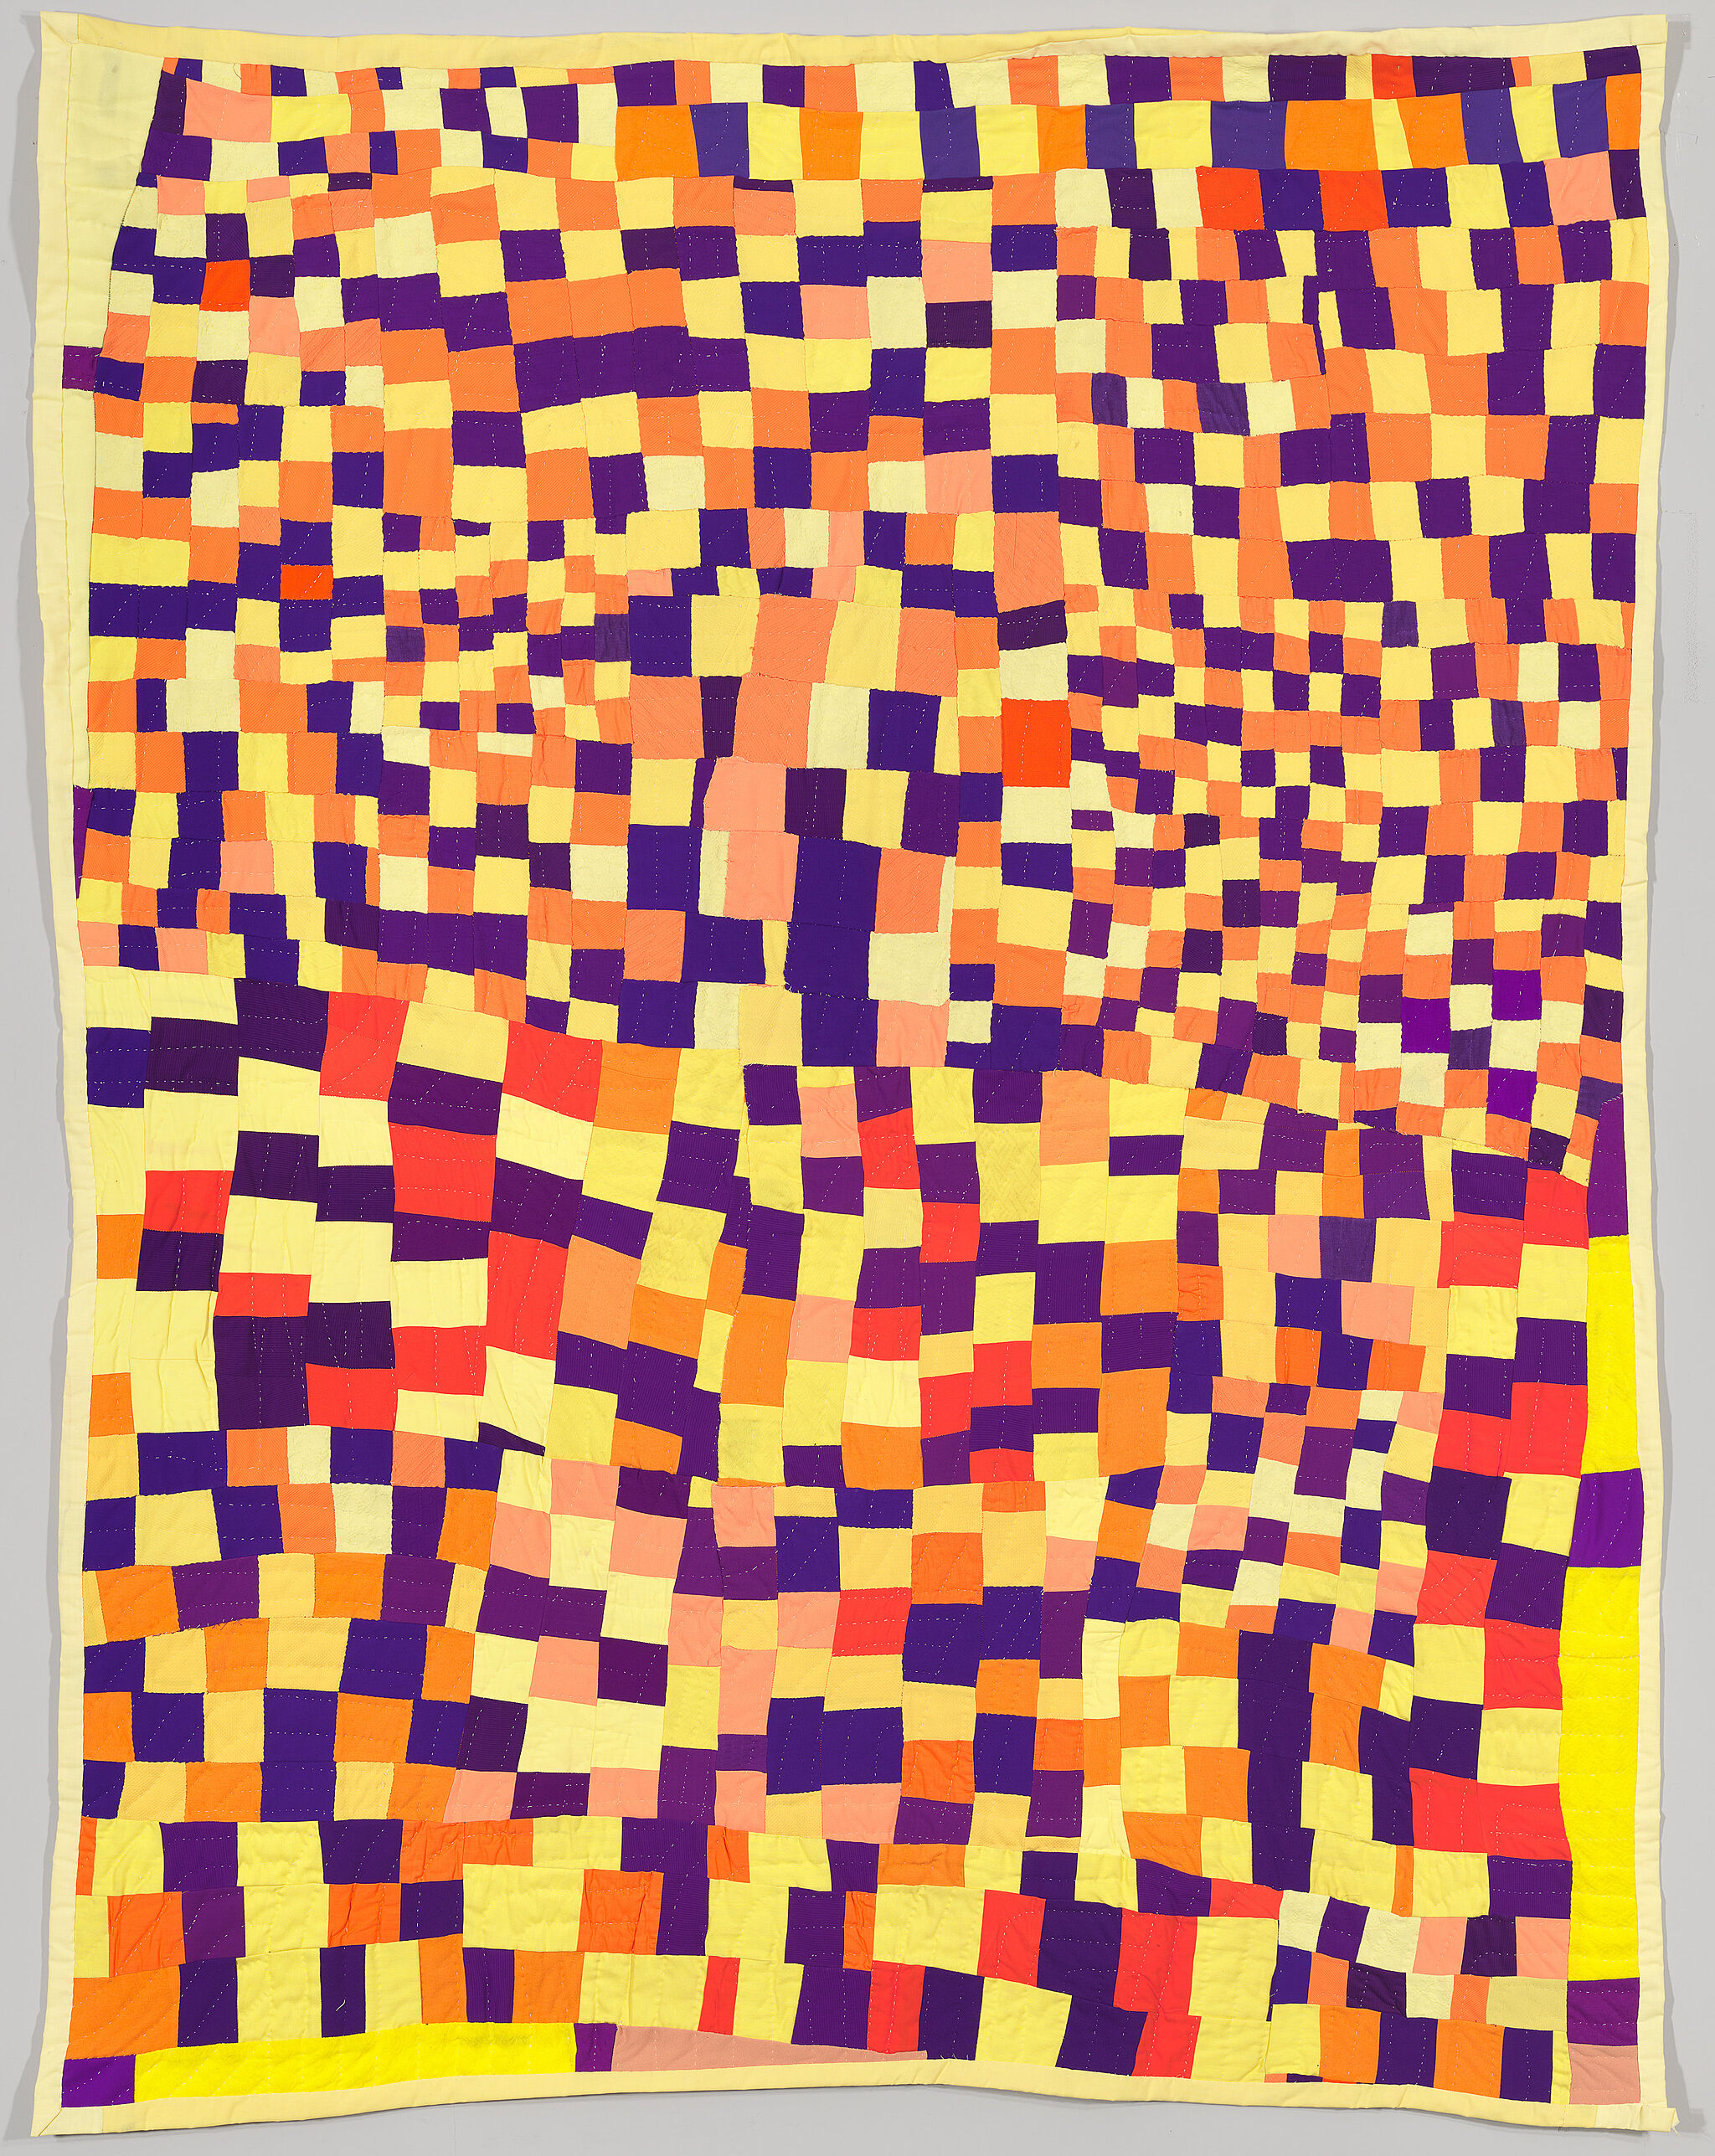 A photo of a yellow and orange patterned quilt.